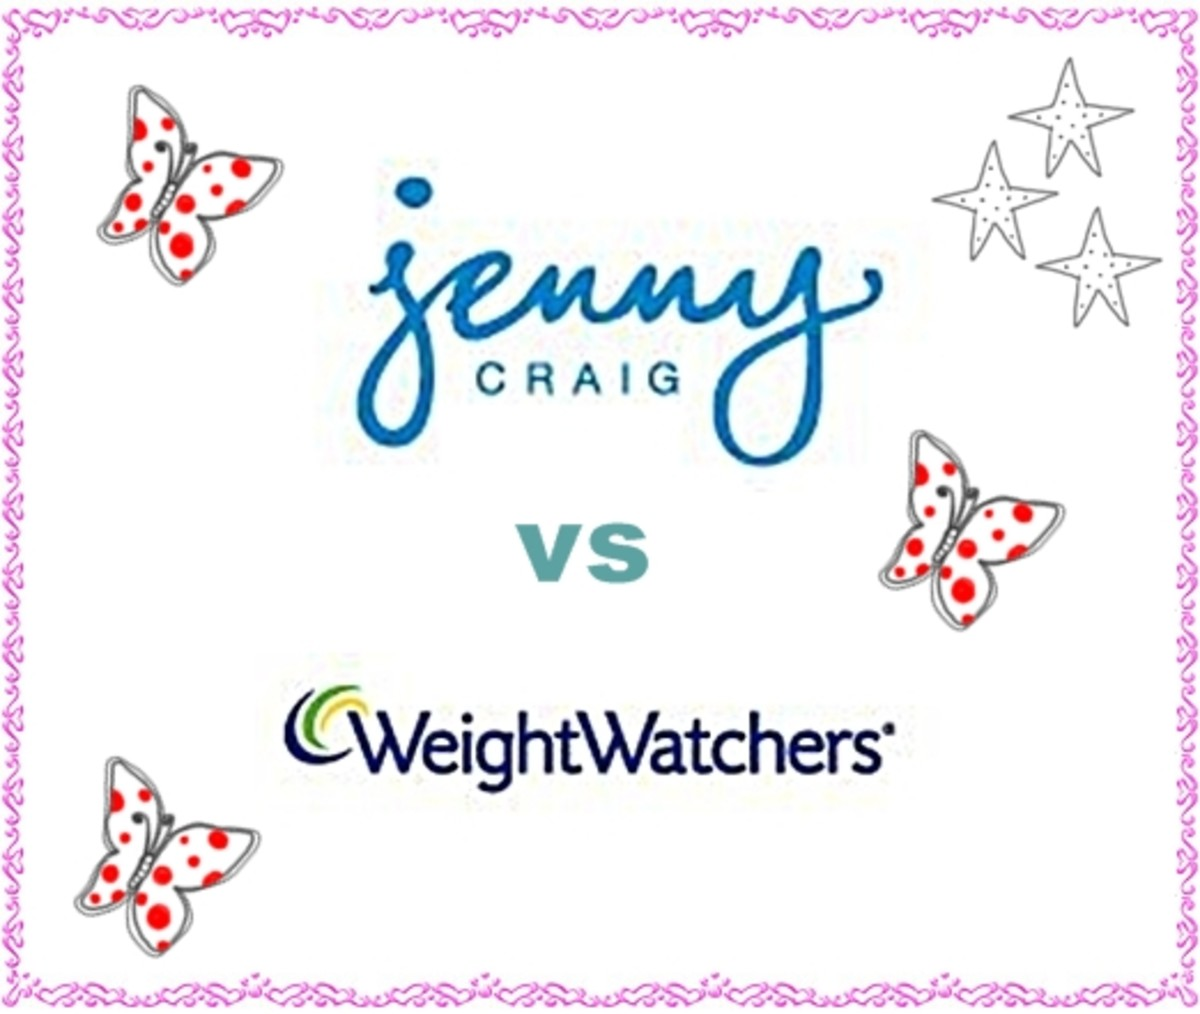 - Jenny Craig vs Weight Watchers, by Rosie2010 on Hubpages -